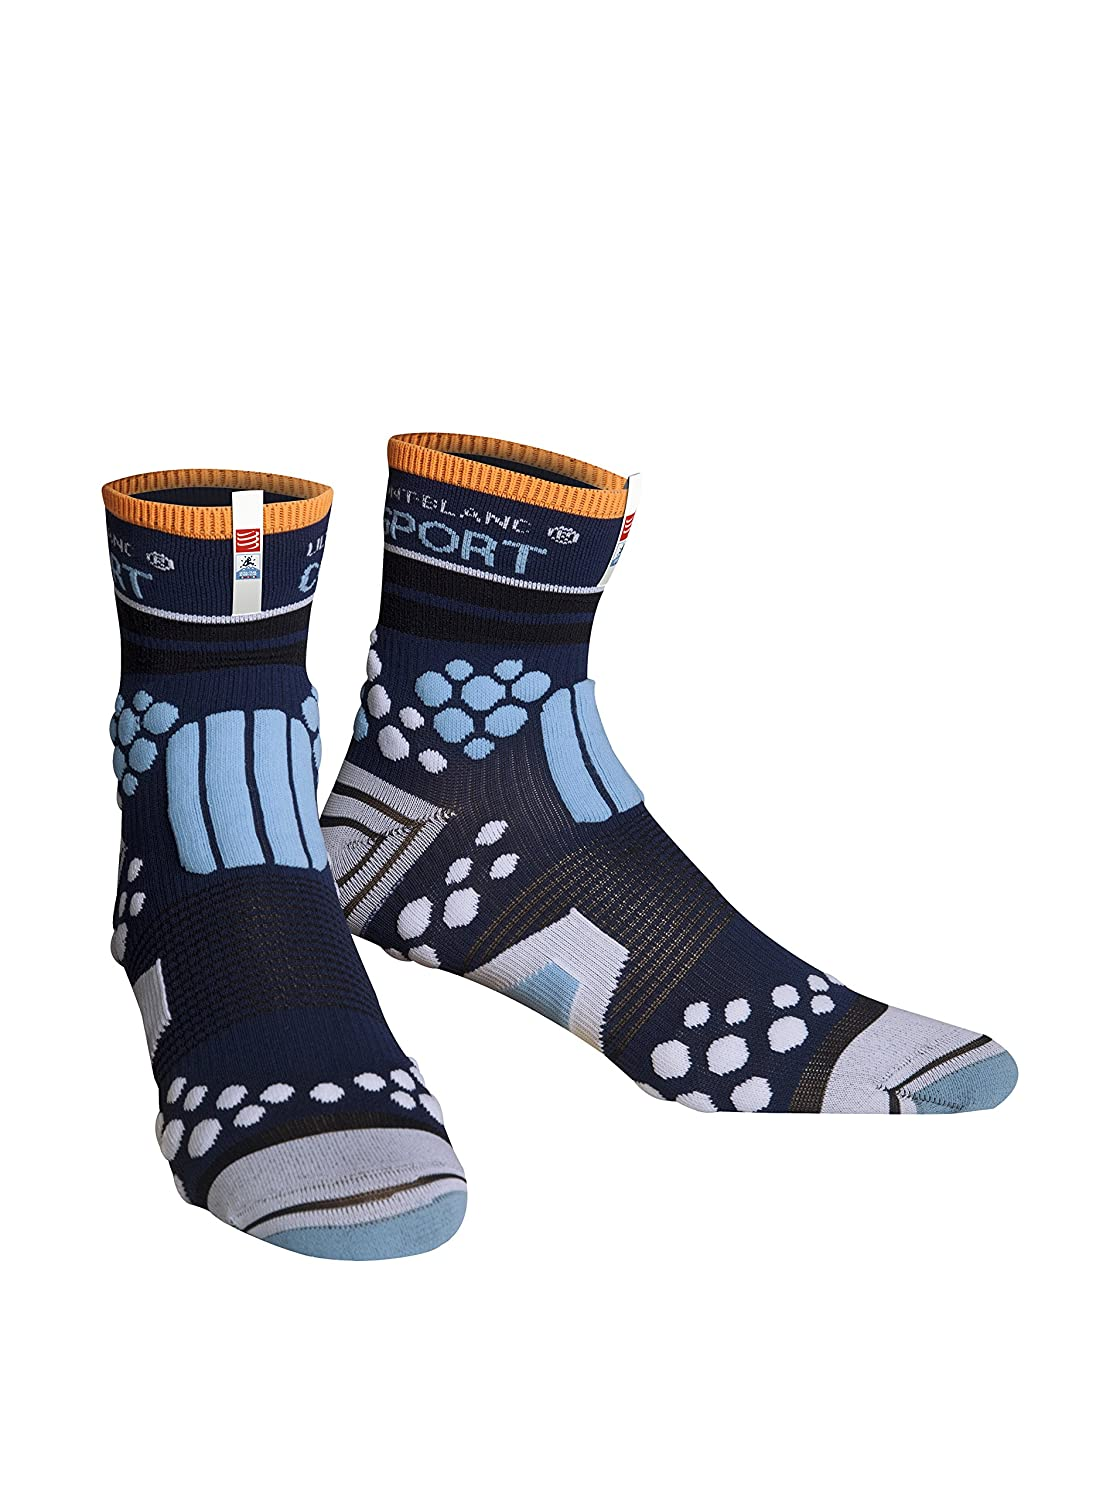 Compressport Calcetines Limited Edition Azul EU 43-45 (T4): Amazon.es: Ropa y accesorios